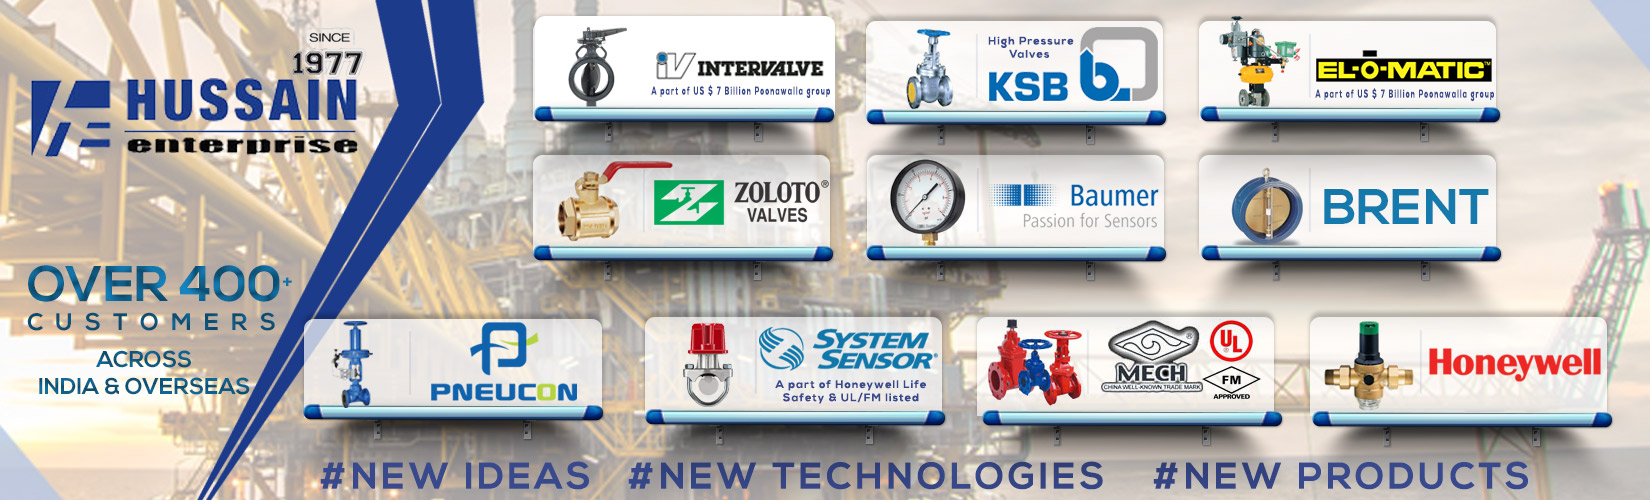 Industrial-Valves-Authorized-Dealers-Chennai